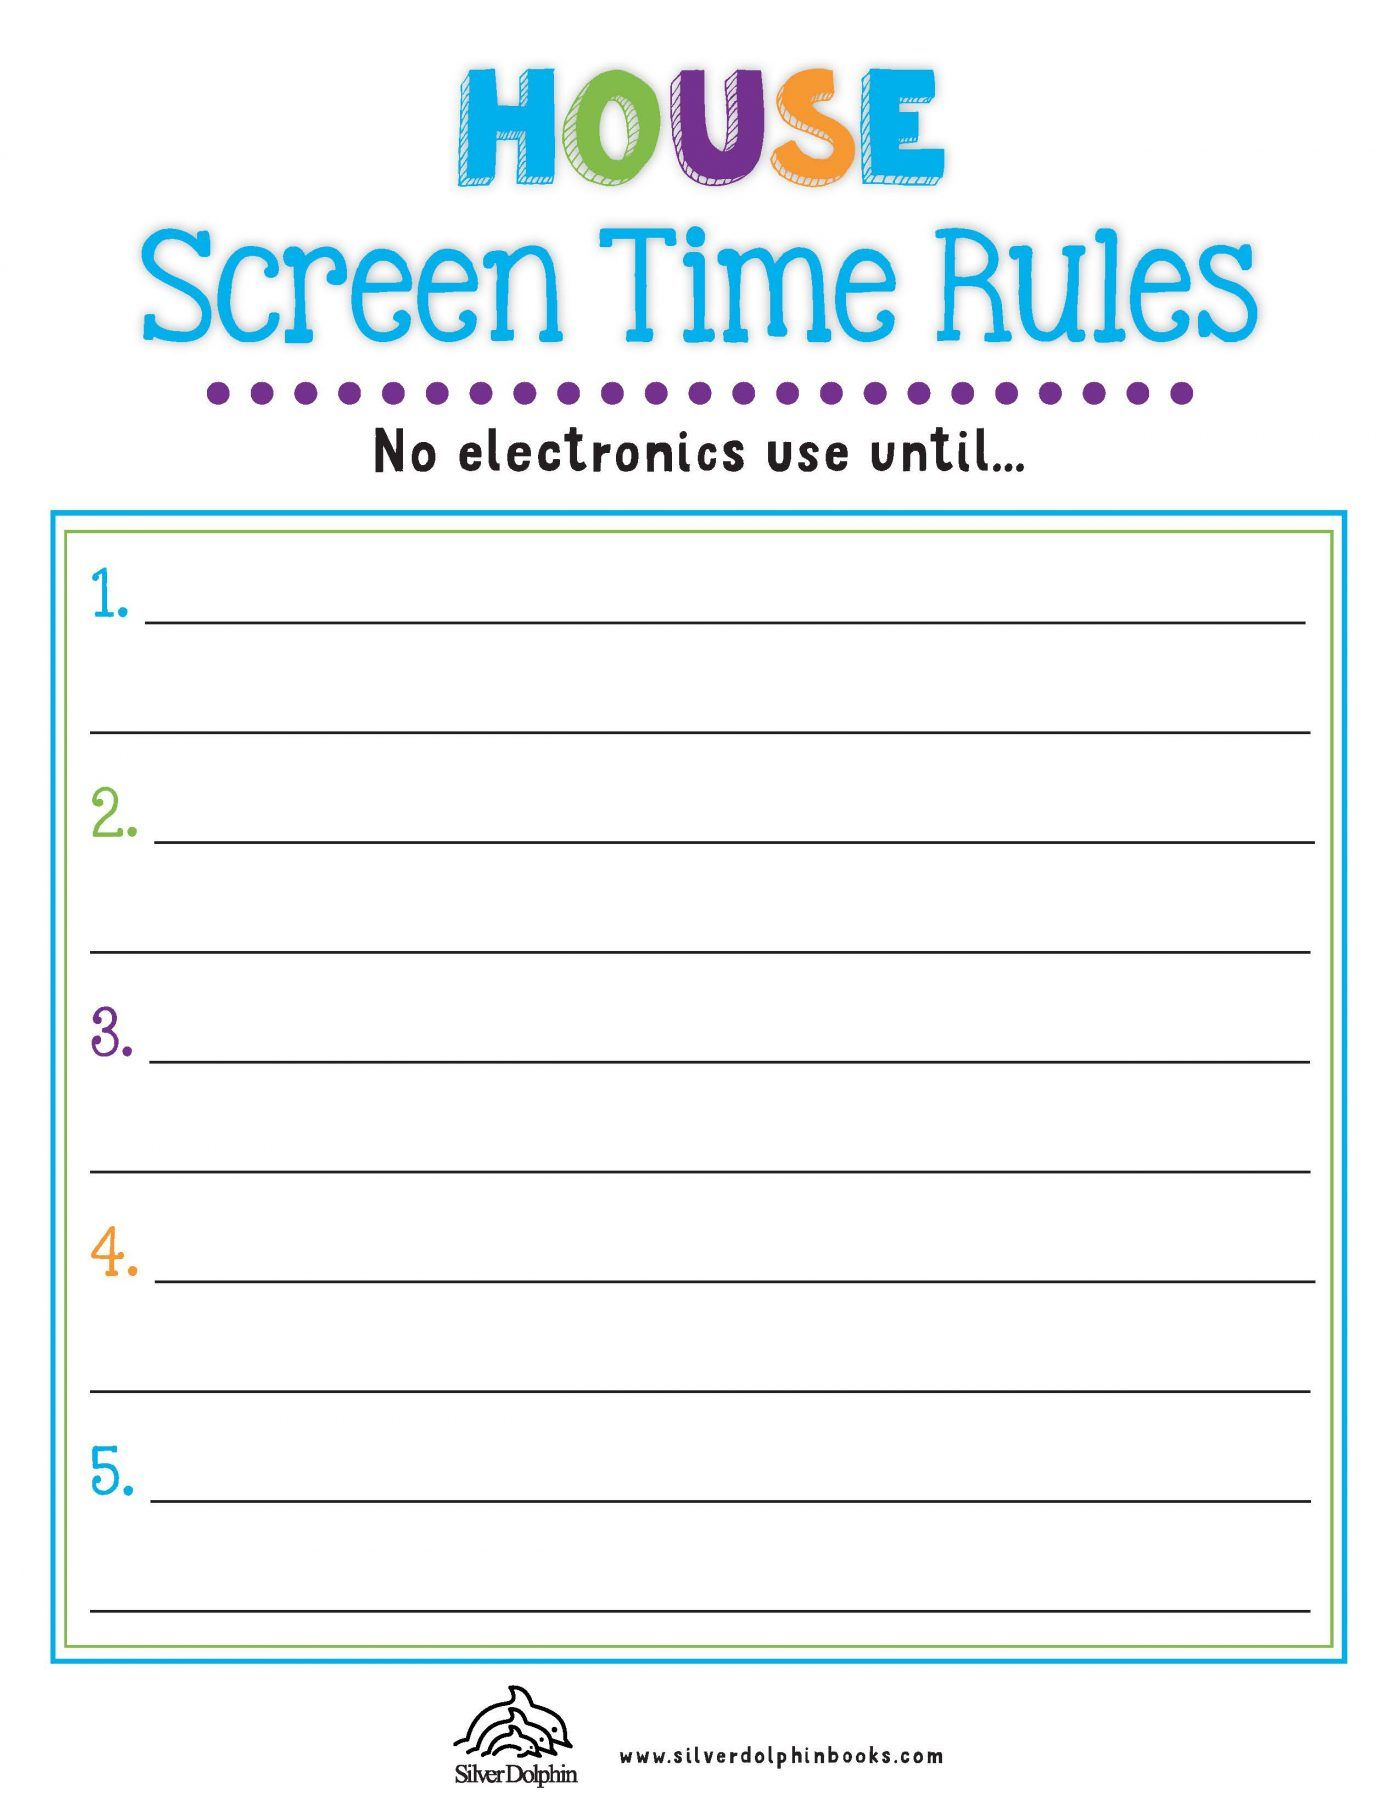 Summer Screen Time Rules Checklists In